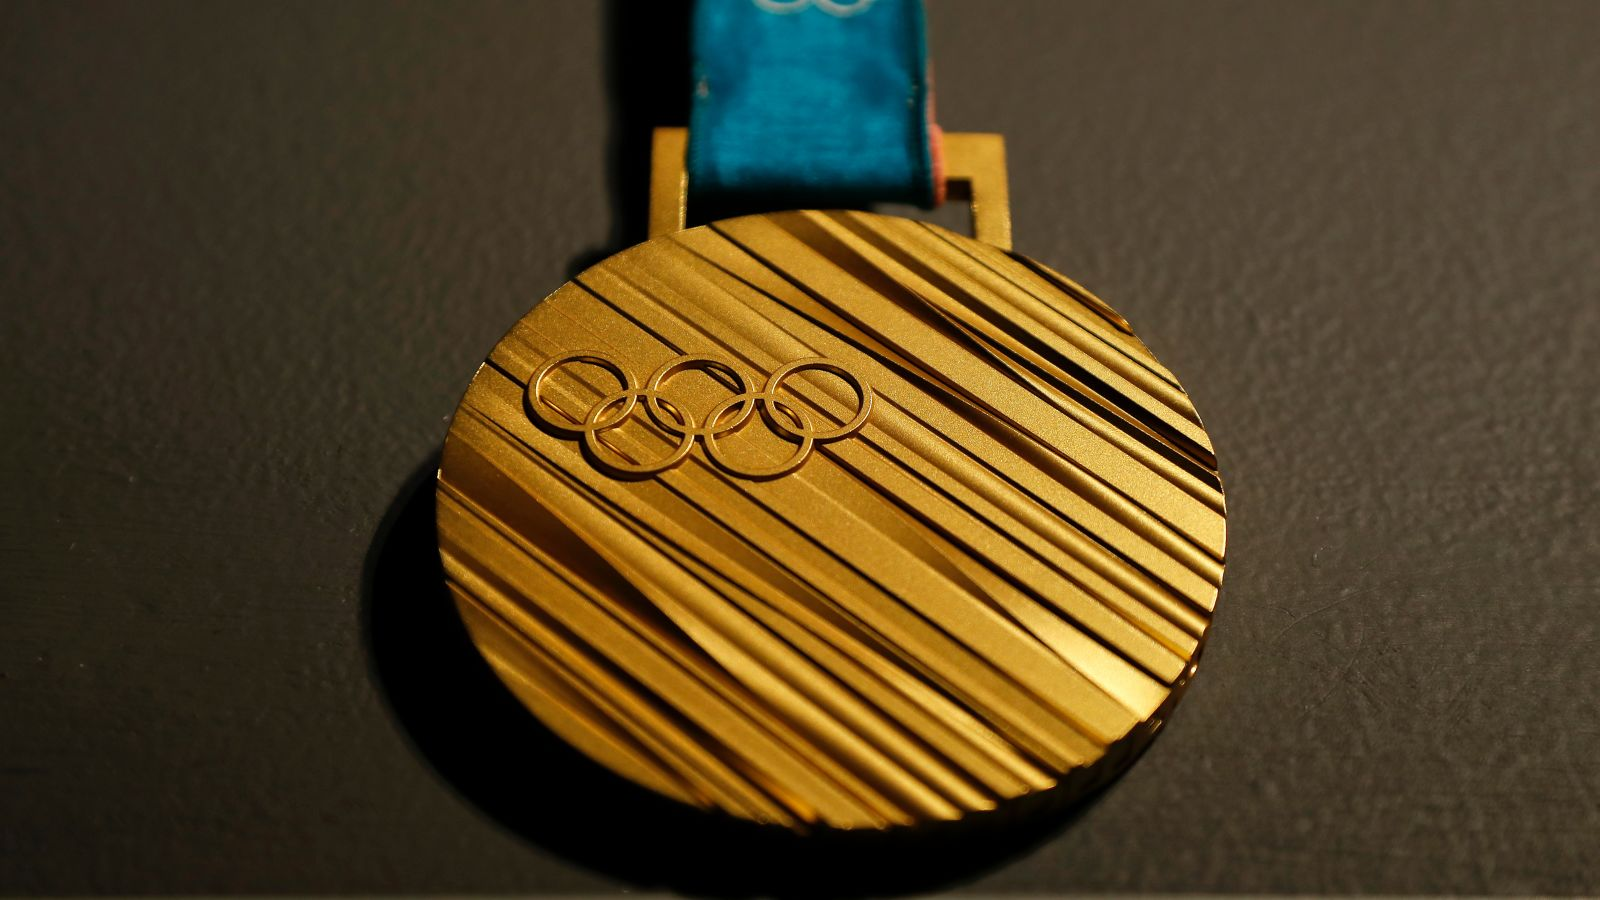 1600x900 - Olympic Gold Metal Wallpapers 24